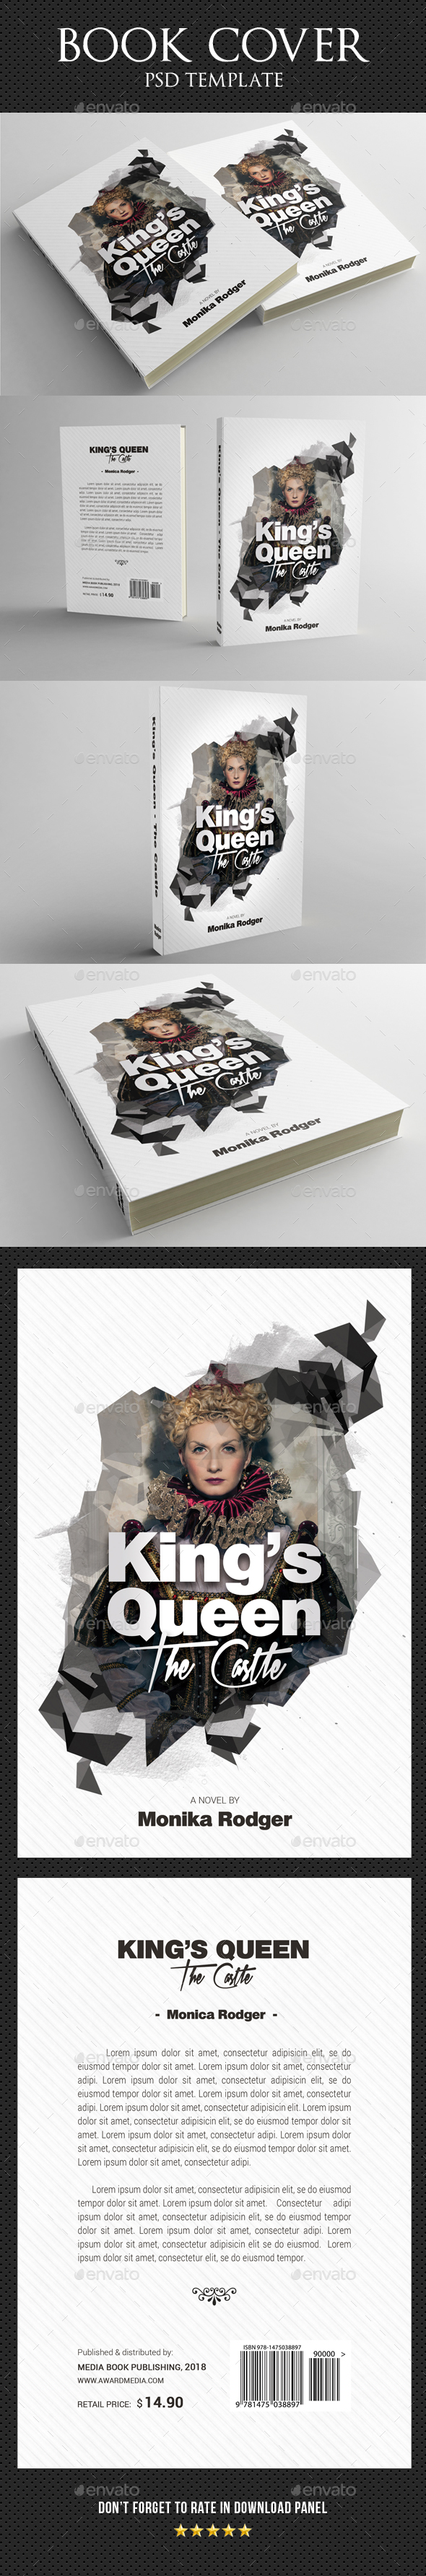 Book Cover Template 43 - Miscellaneous Print Templates